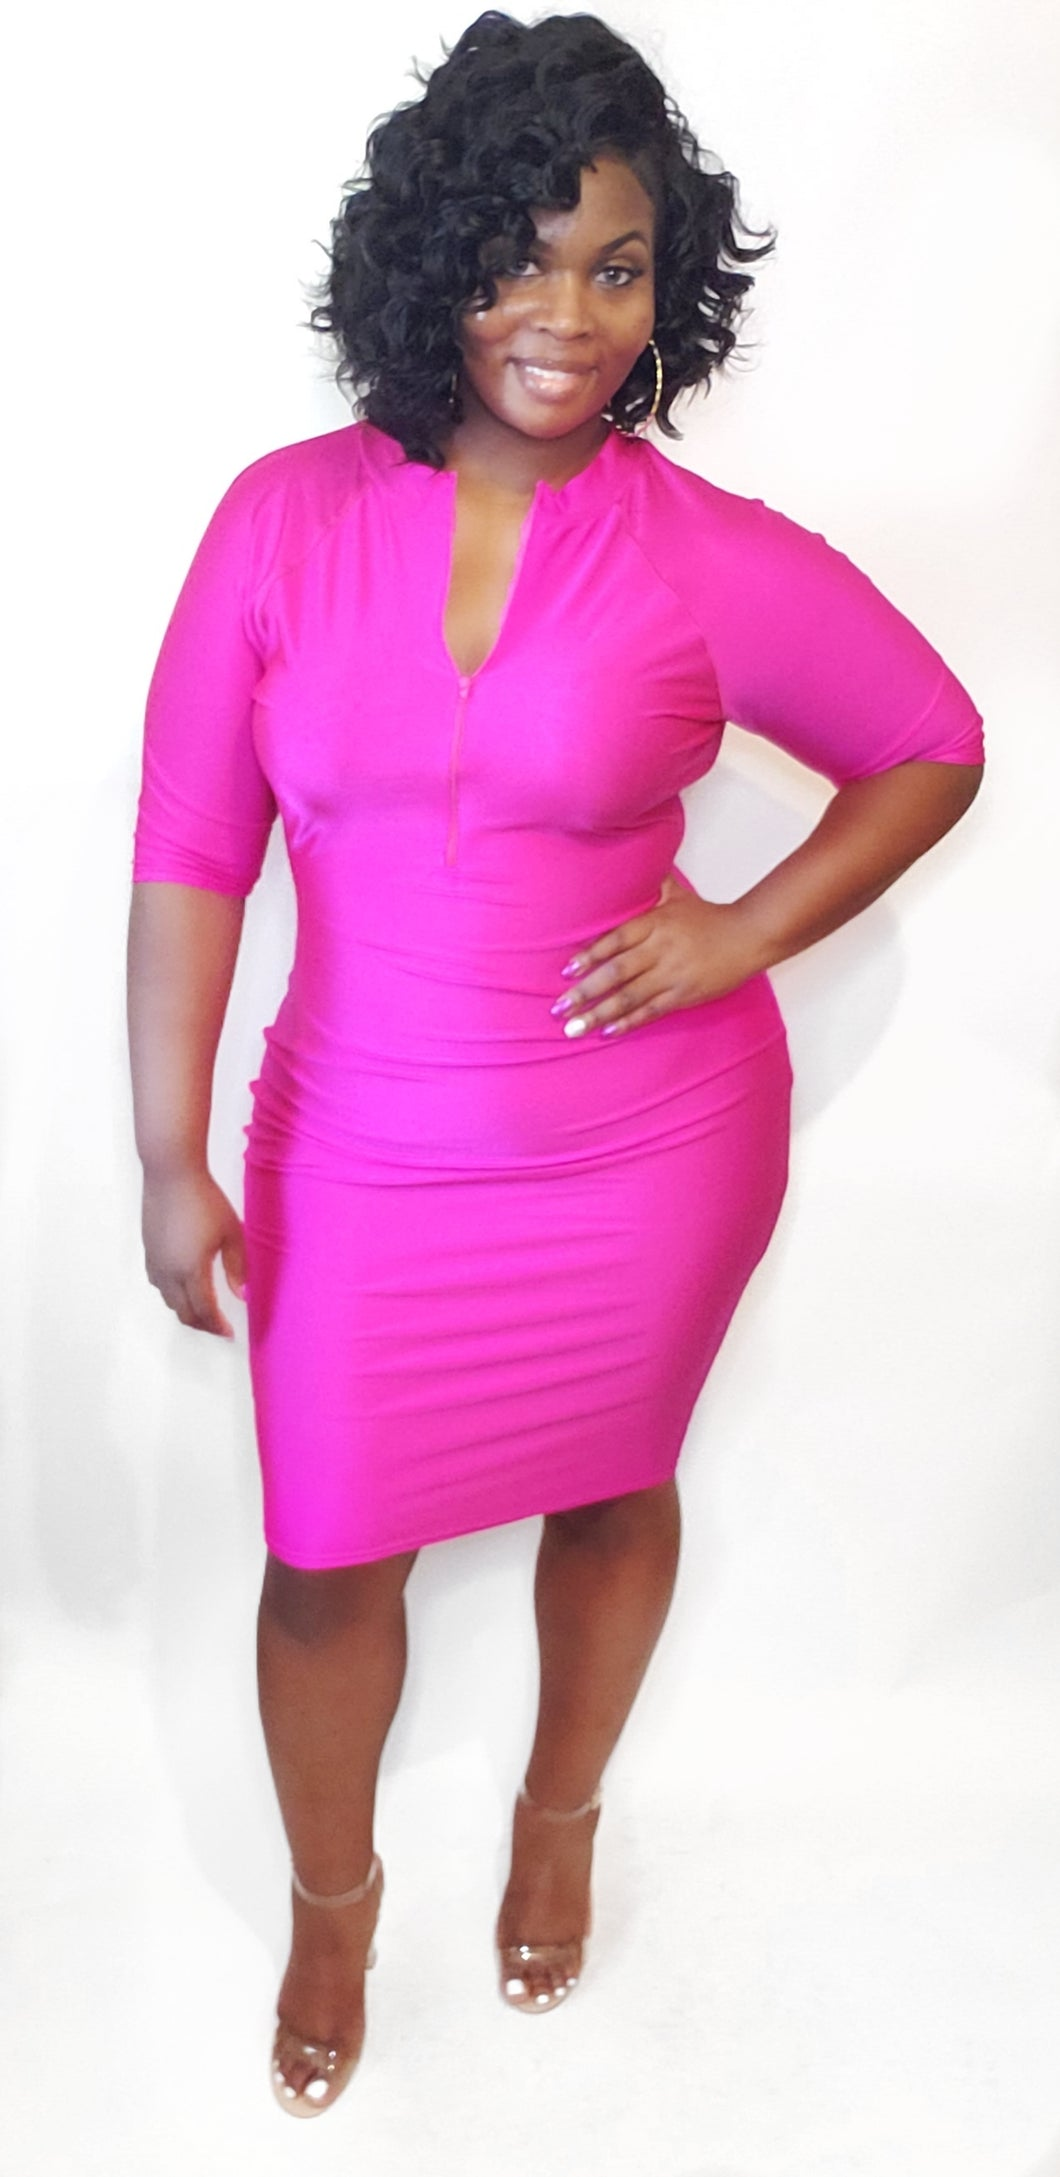 Neon Pink Punch bodycon dress